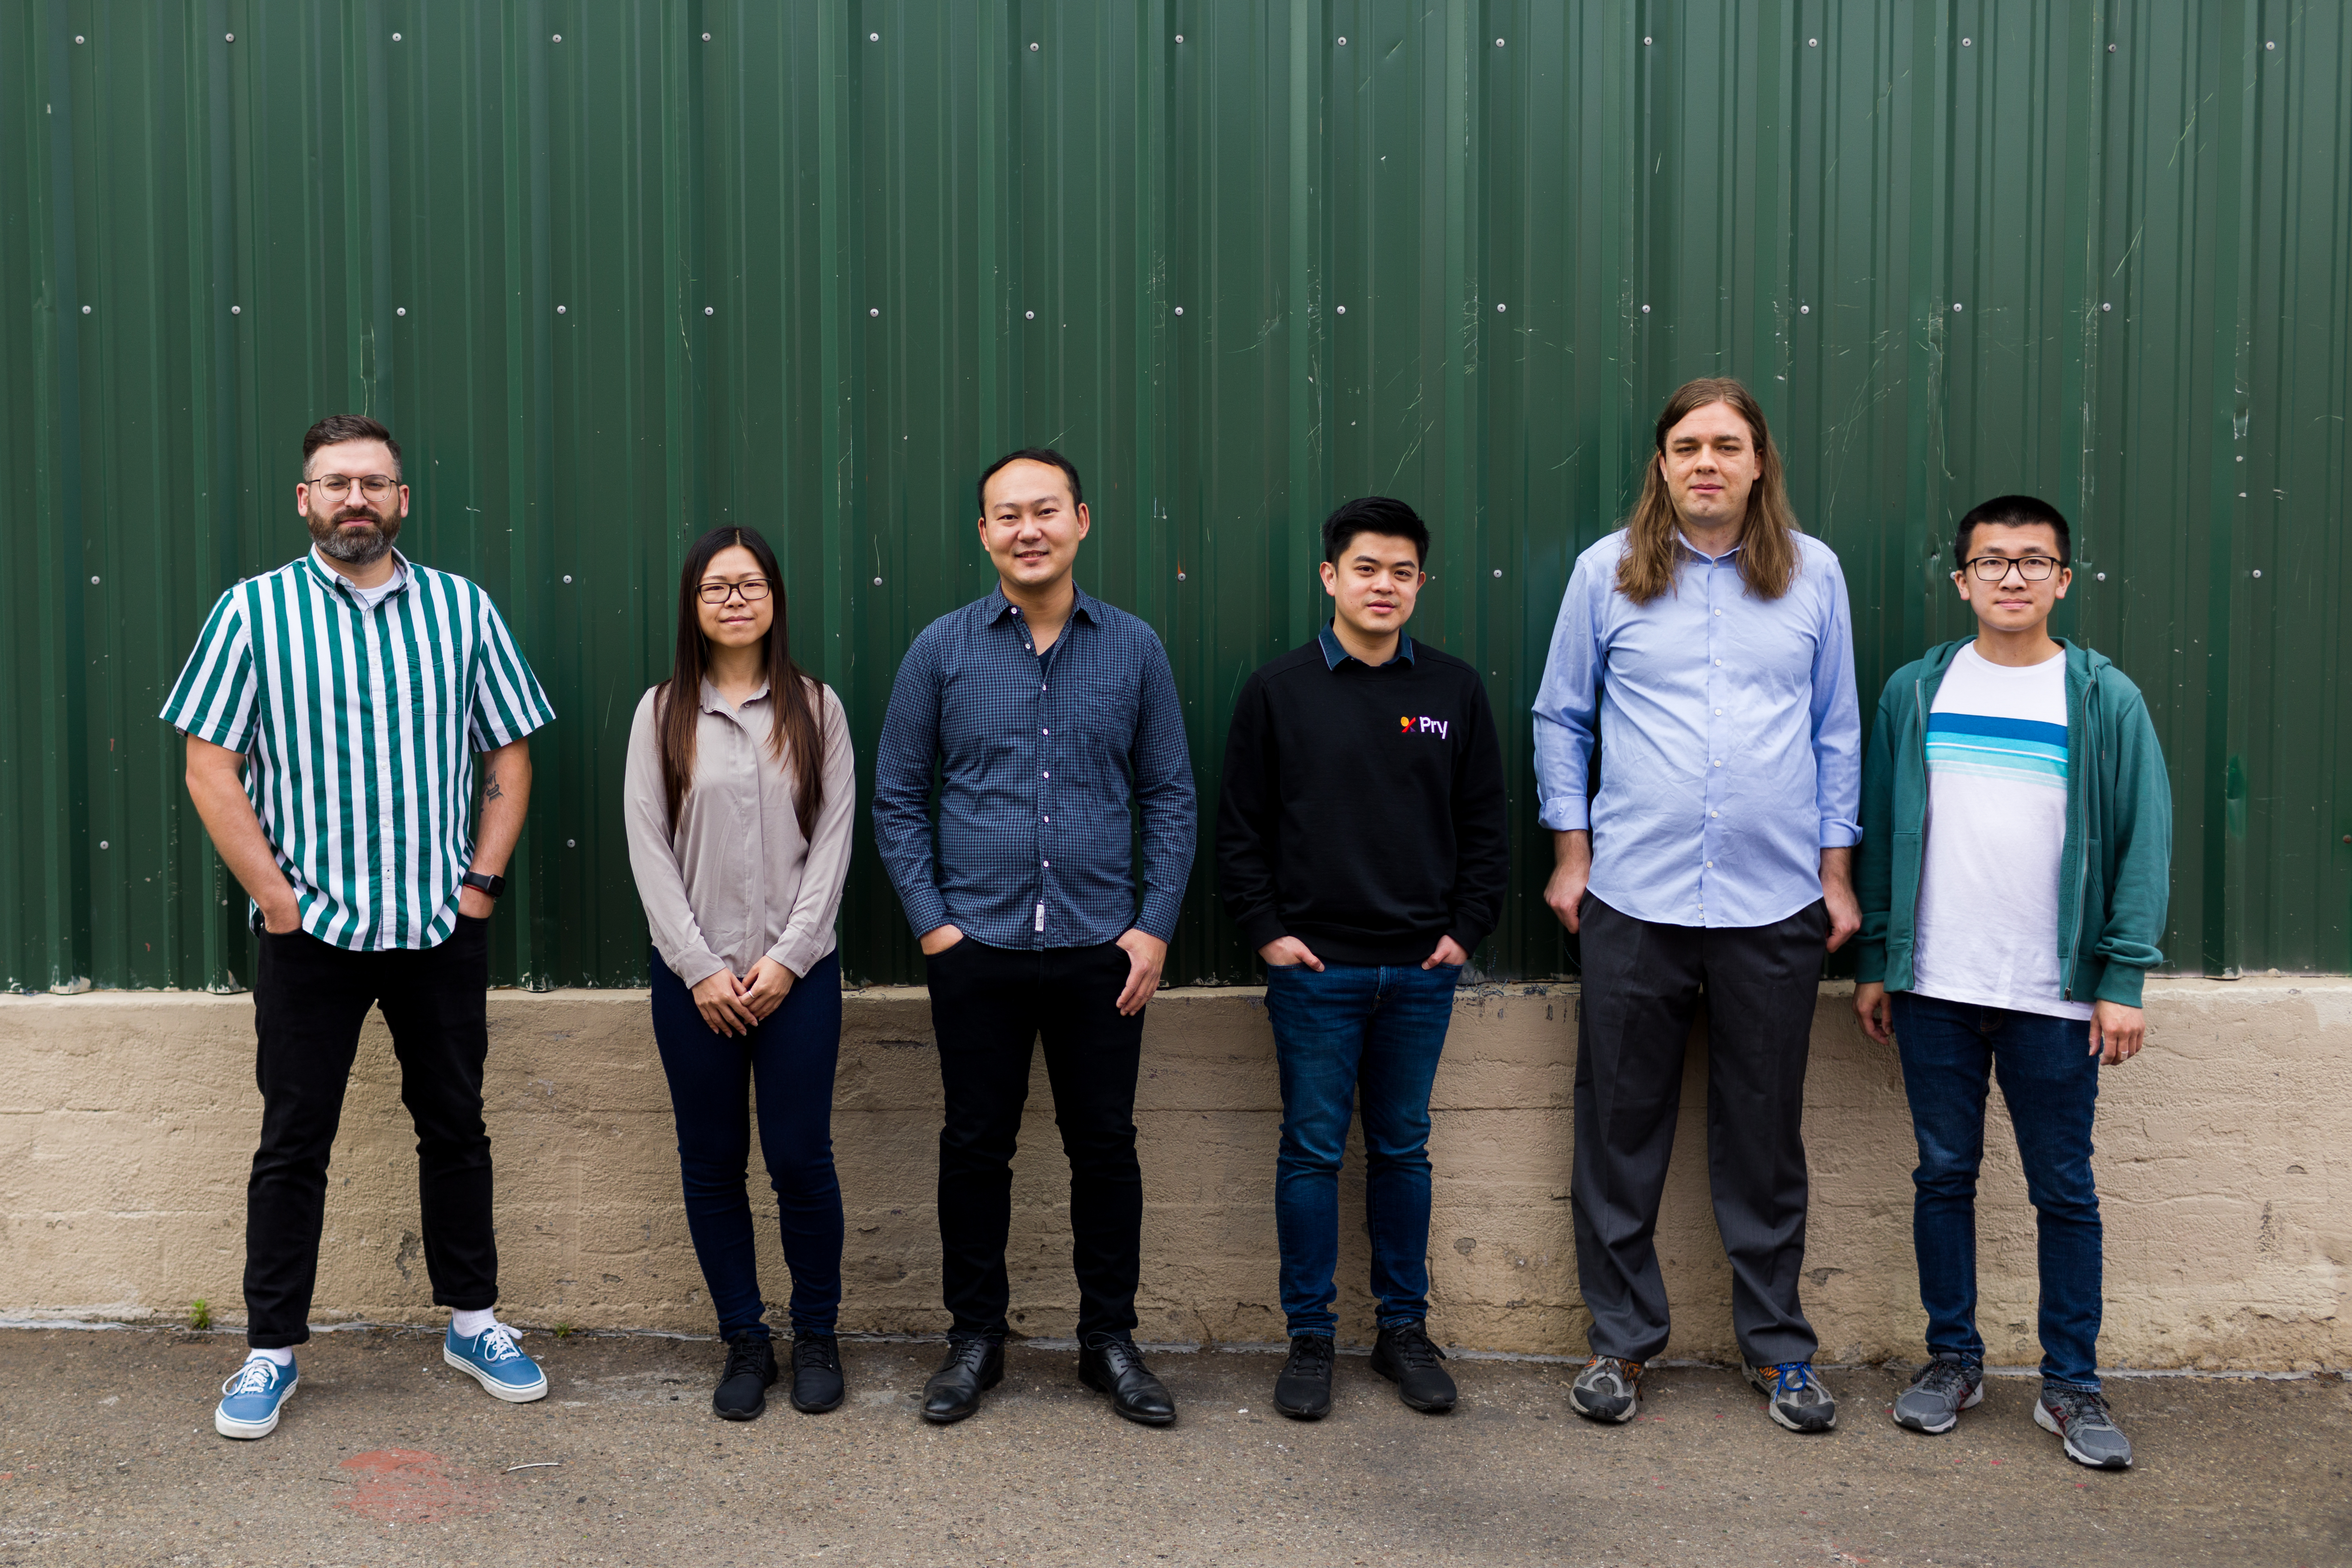 A group photo of Pry Financials' team